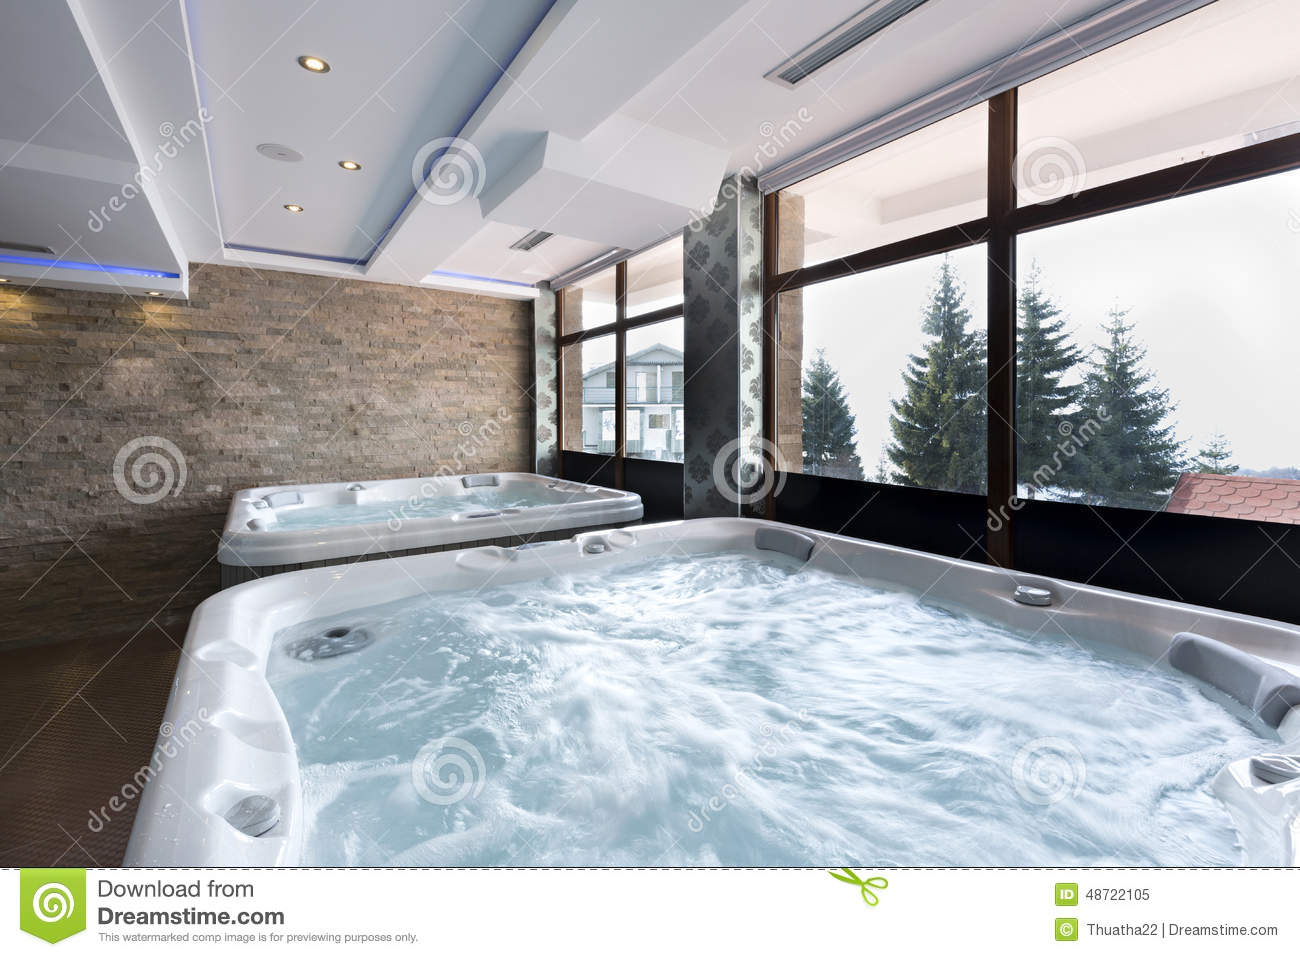 Jacuzzi Baths In Hotel Spa Center Stock Photo 48722105 - Megapixl